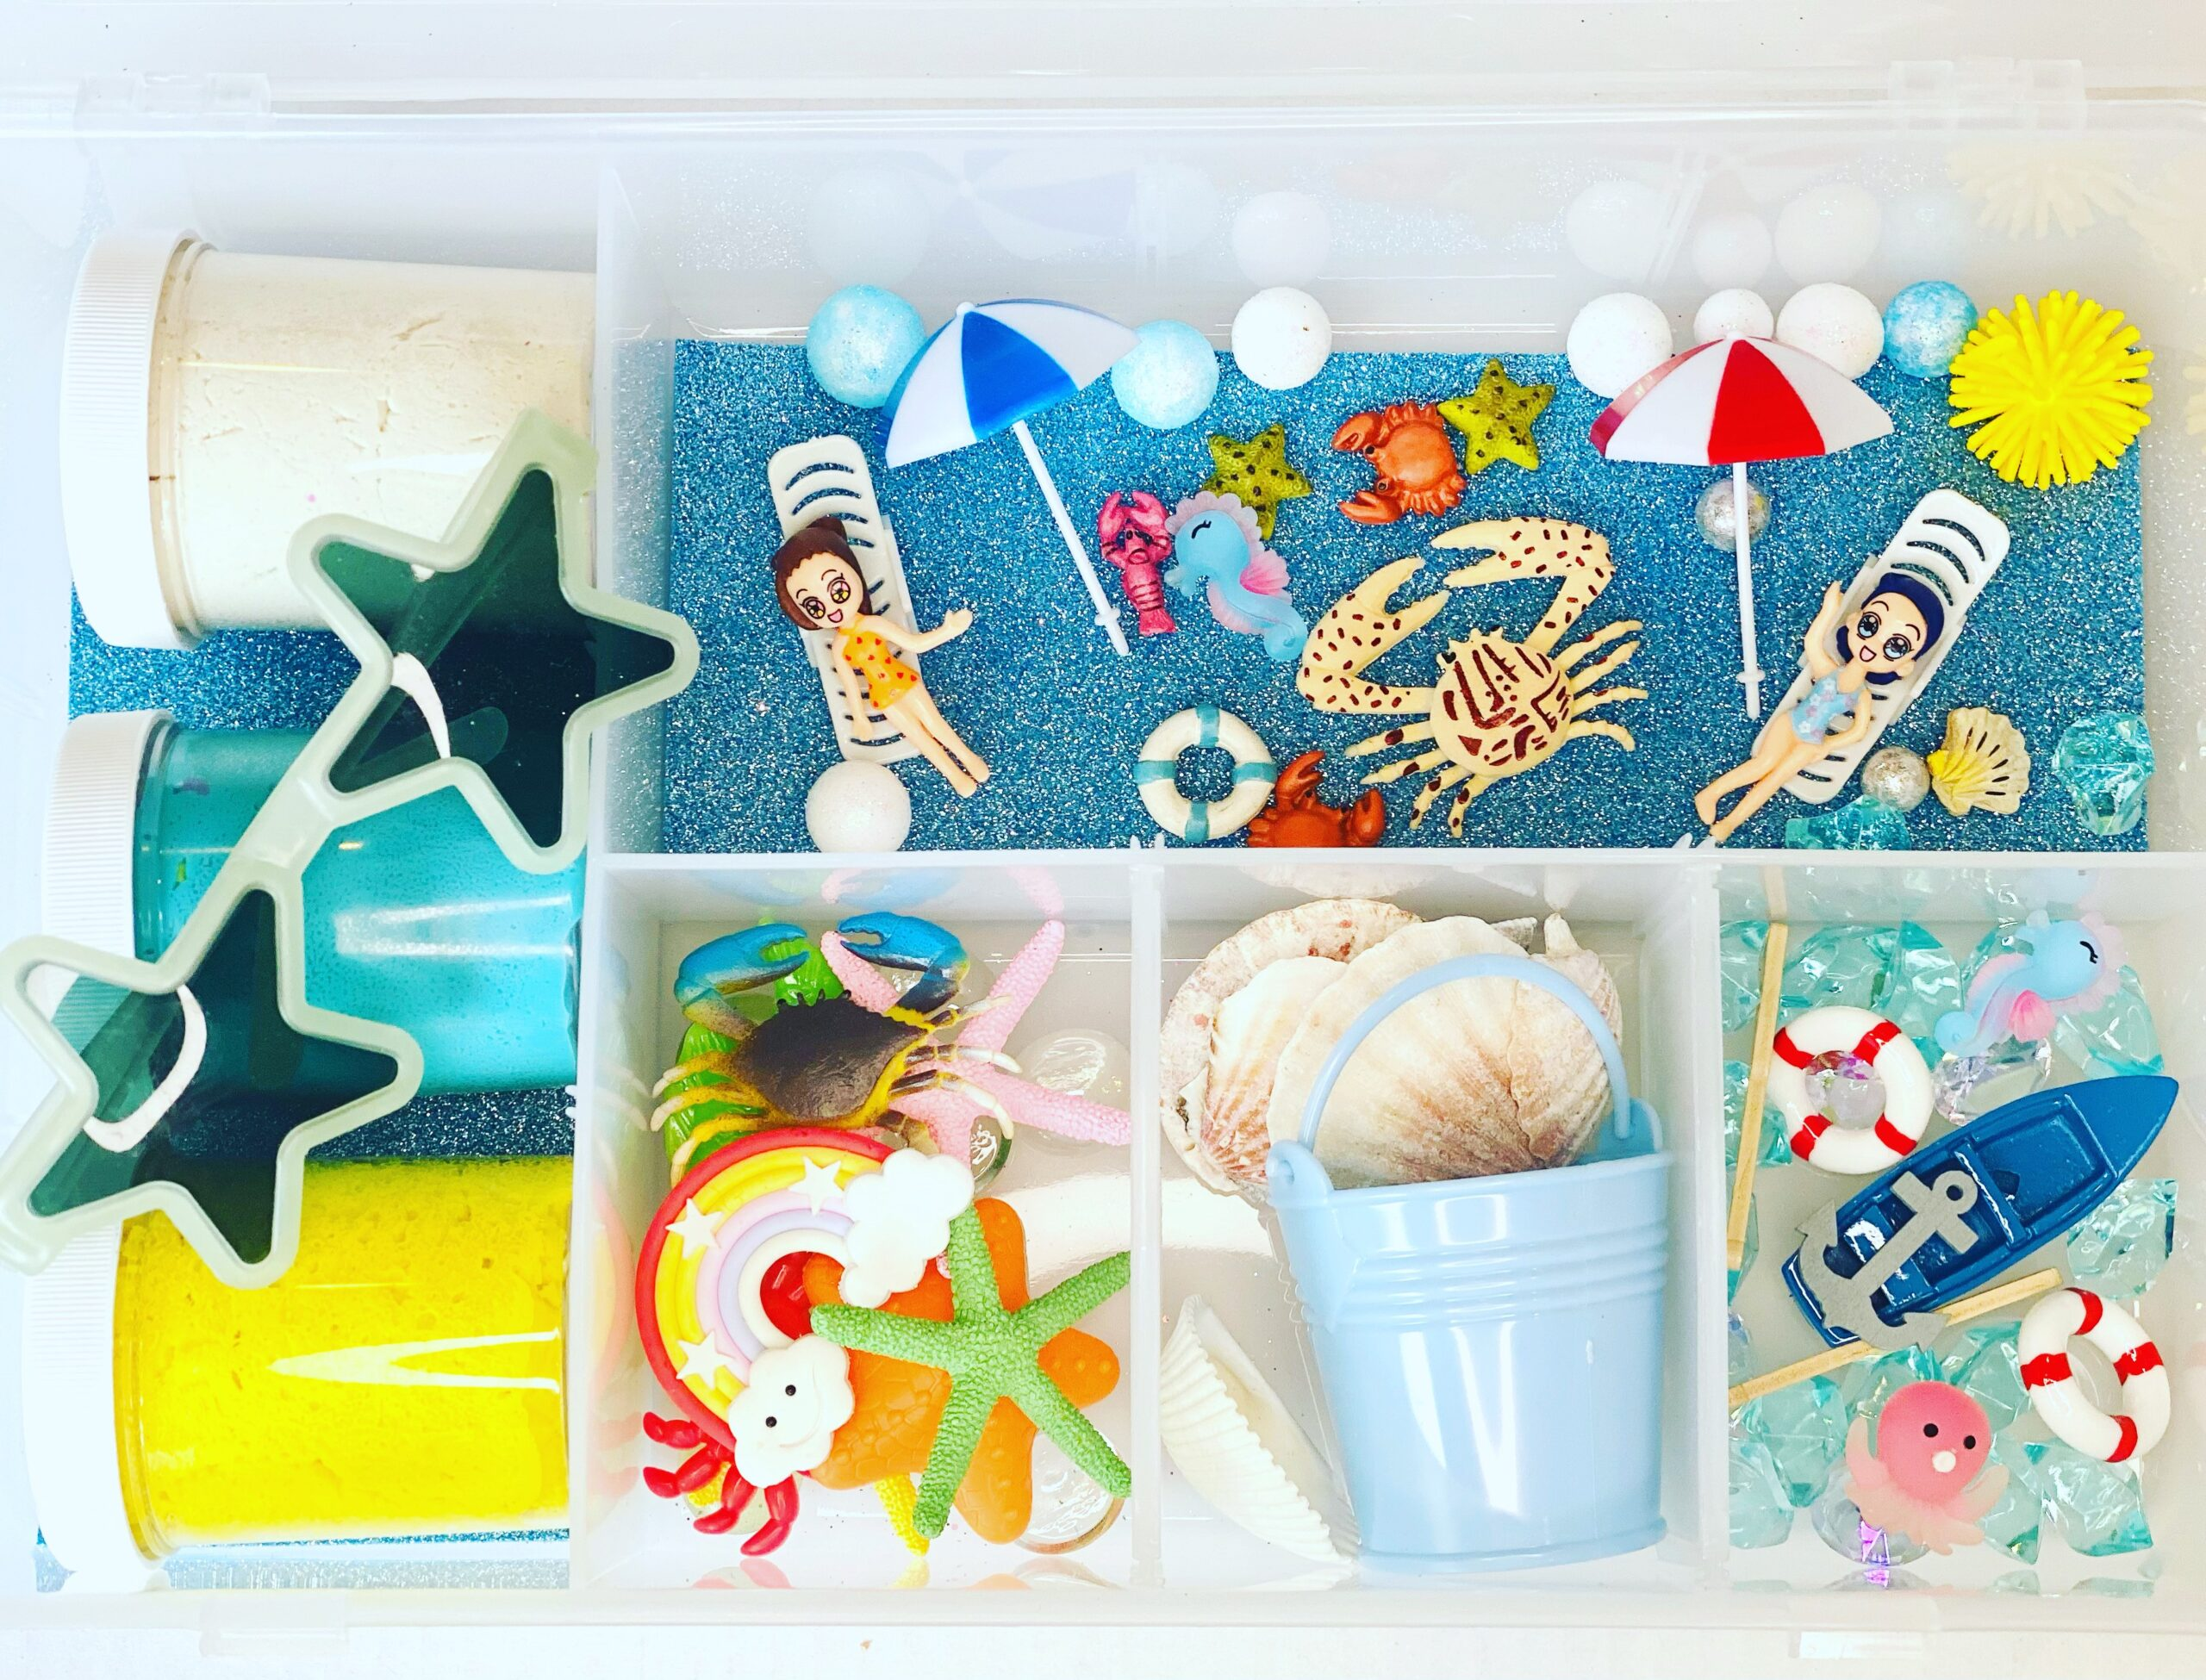 Mompreneur Creates Busy Box Child Sensory Kits To Keep Children Mindful And Engaged